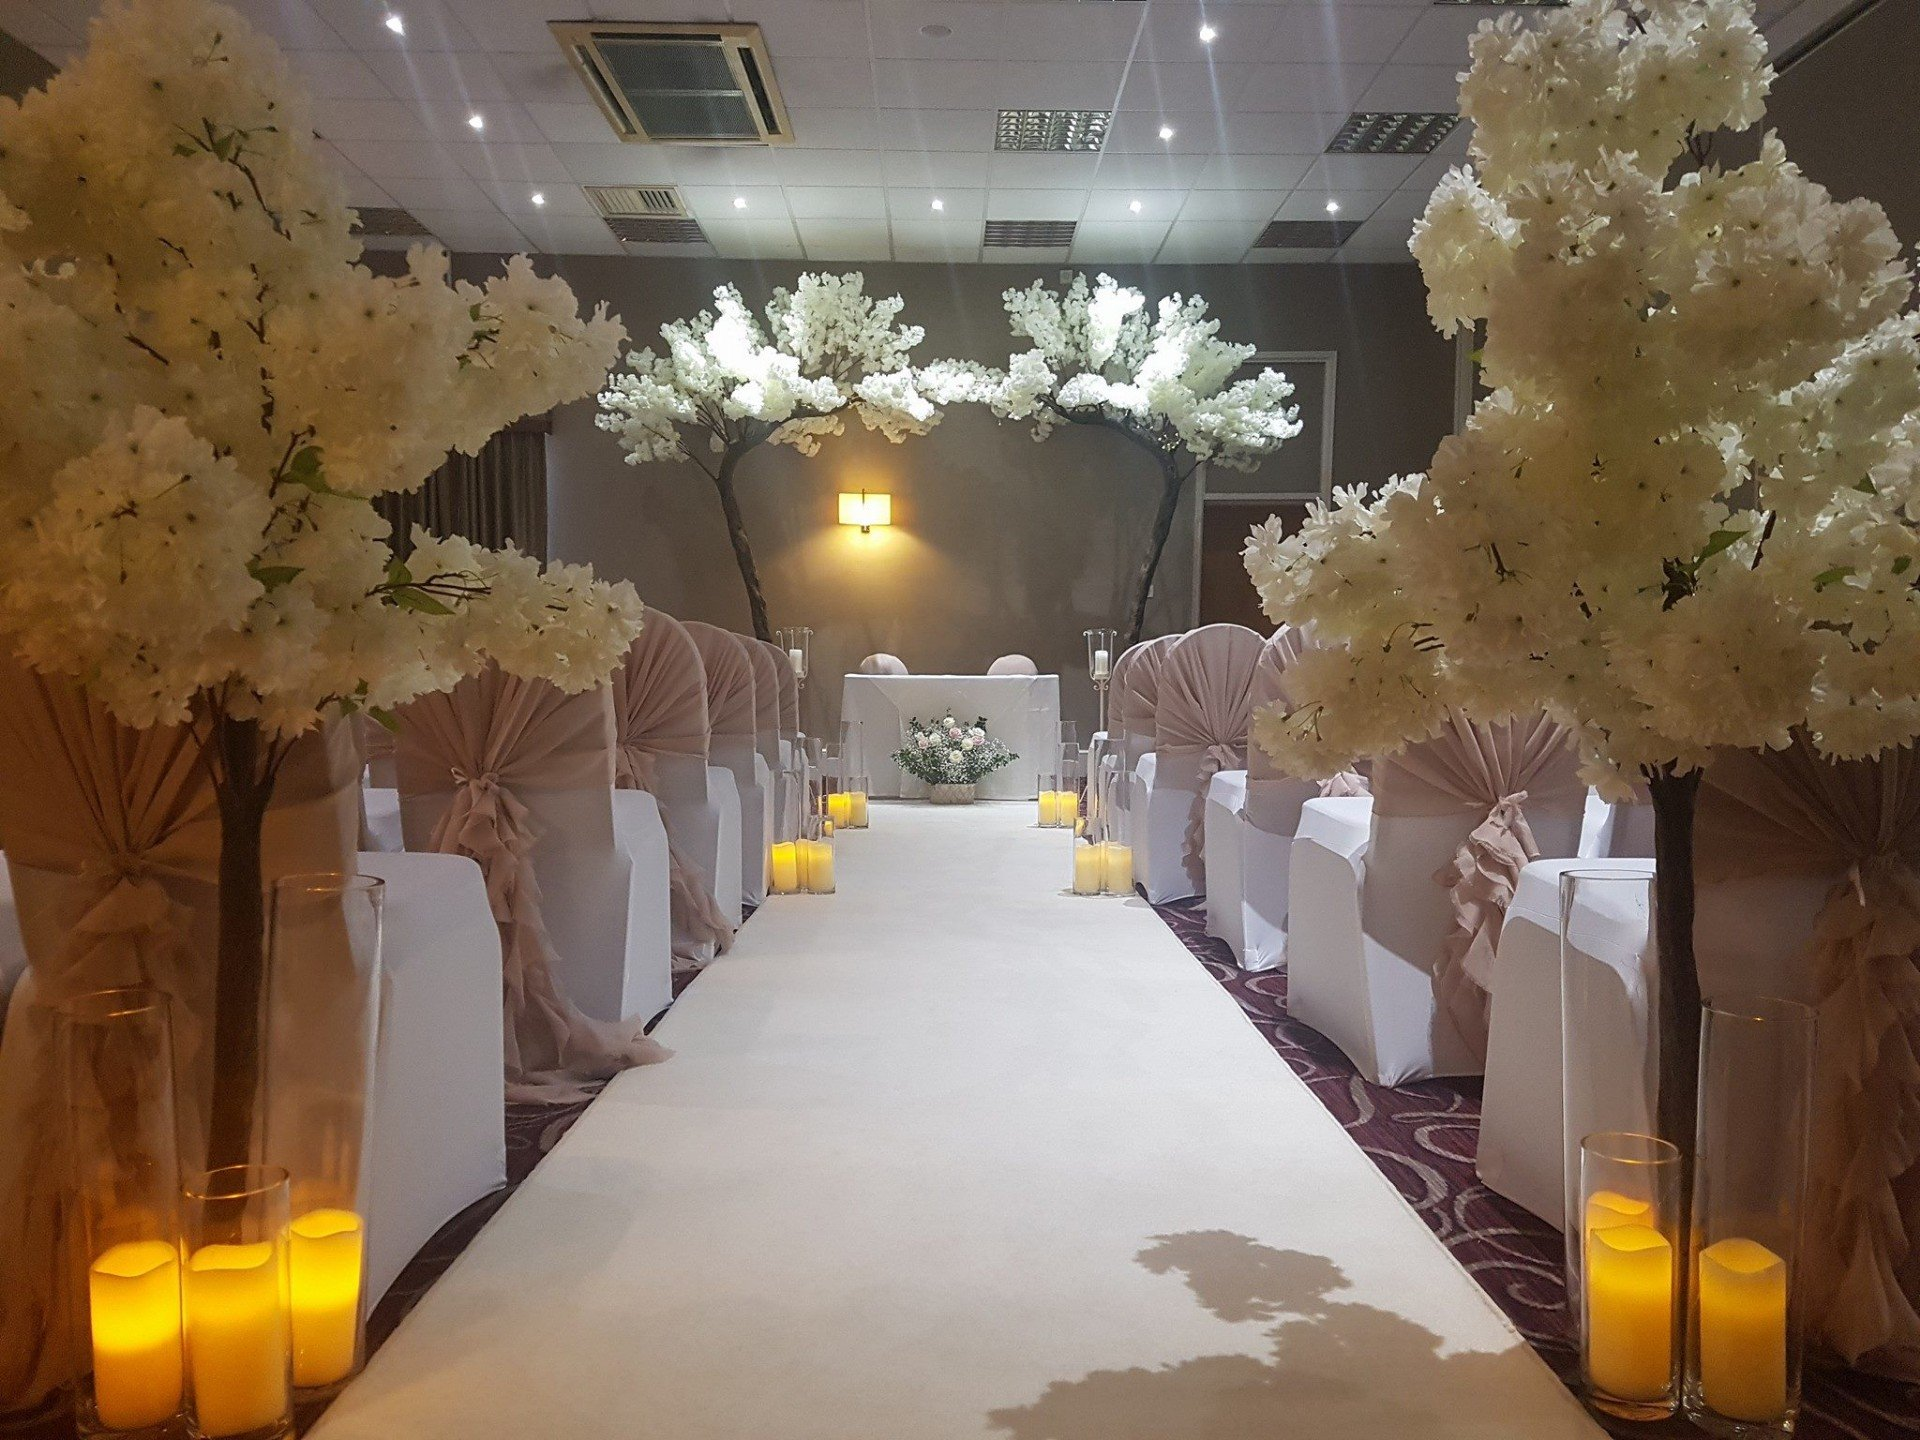 Blossom tress and ceremony arch, partnered with a white candle aisle carpet and beautifully lit walkway.